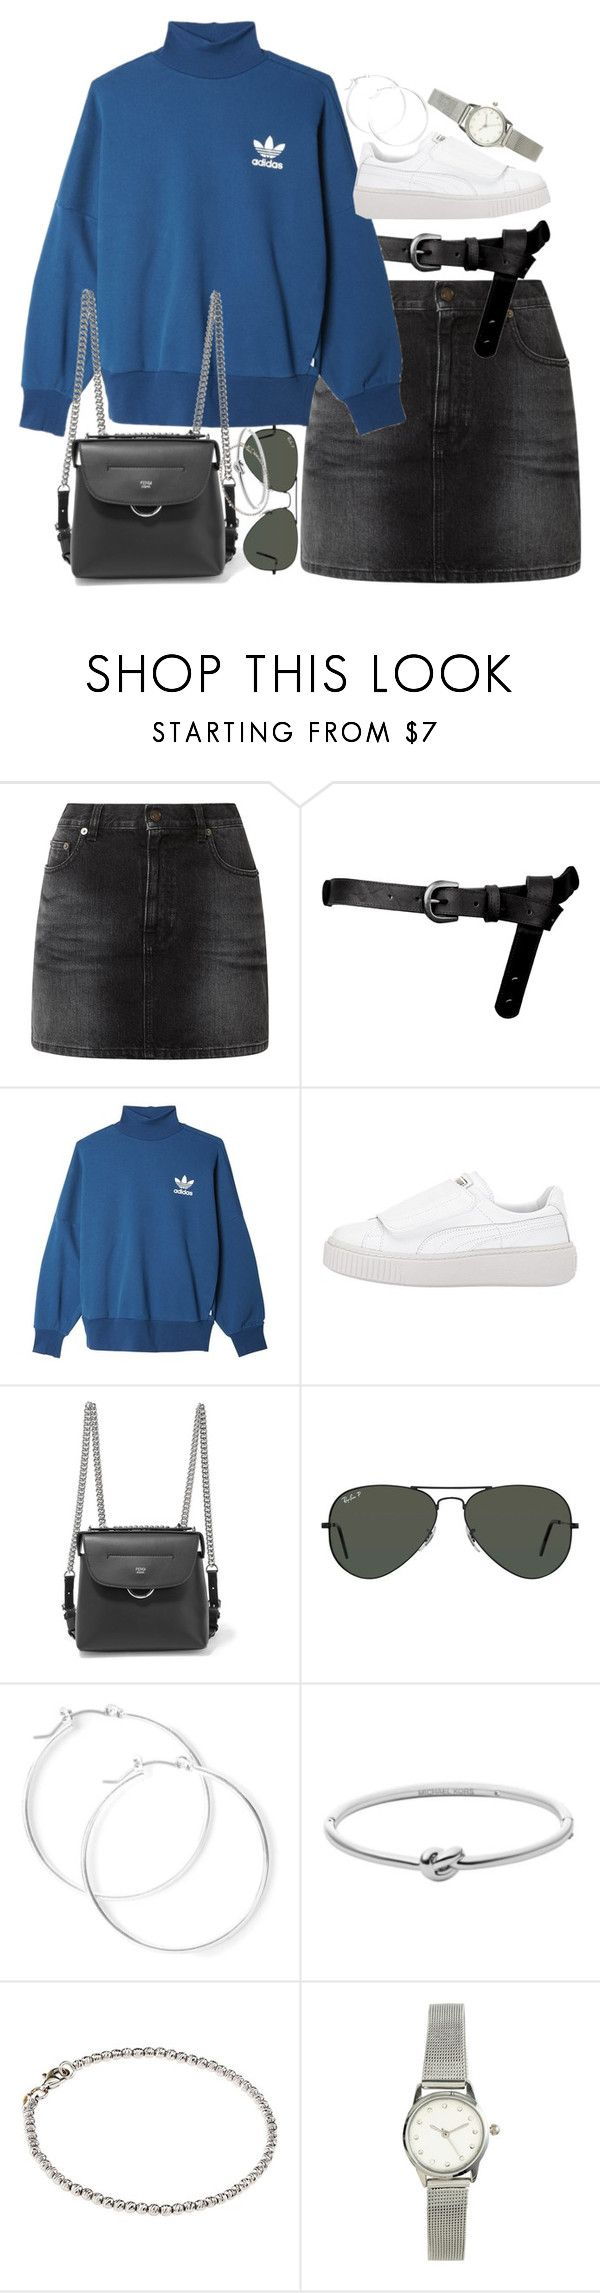 """""""Unbenannt #1382"""" by flytotheunknown ❤ liked on Polyvore featuring Yves Saint Laurent, ASOS, adidas Originals, Fendi, Ray-Ban, claire's, Michael Kors, Carolina Bucci and H&M"""